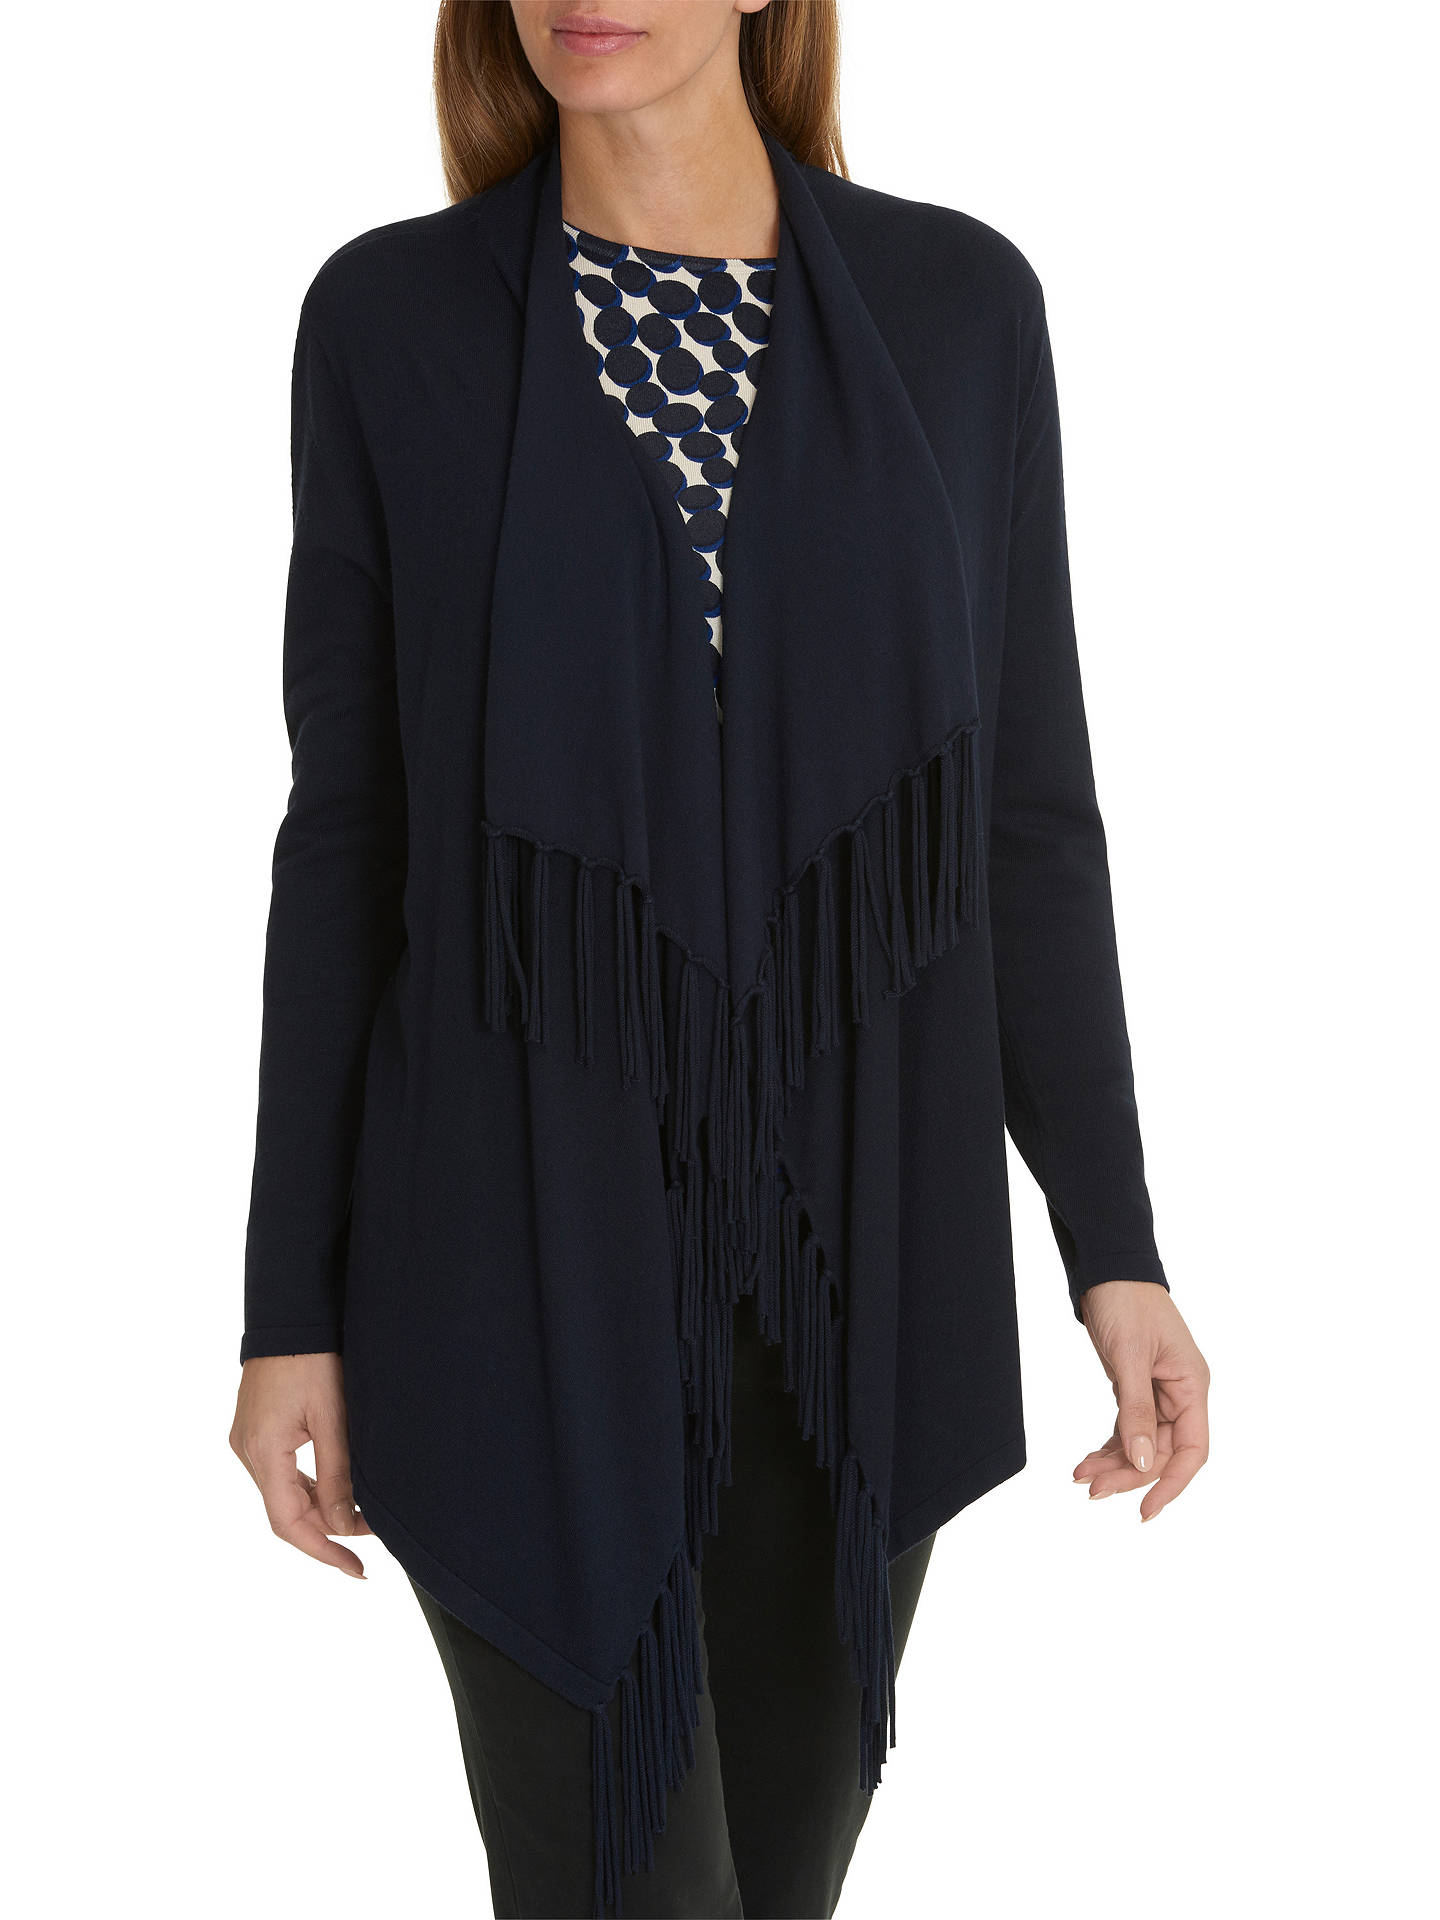 BuyBetty Barclay Tasselled Cardigan, Dark Sky, 8 Online at johnlewis.com